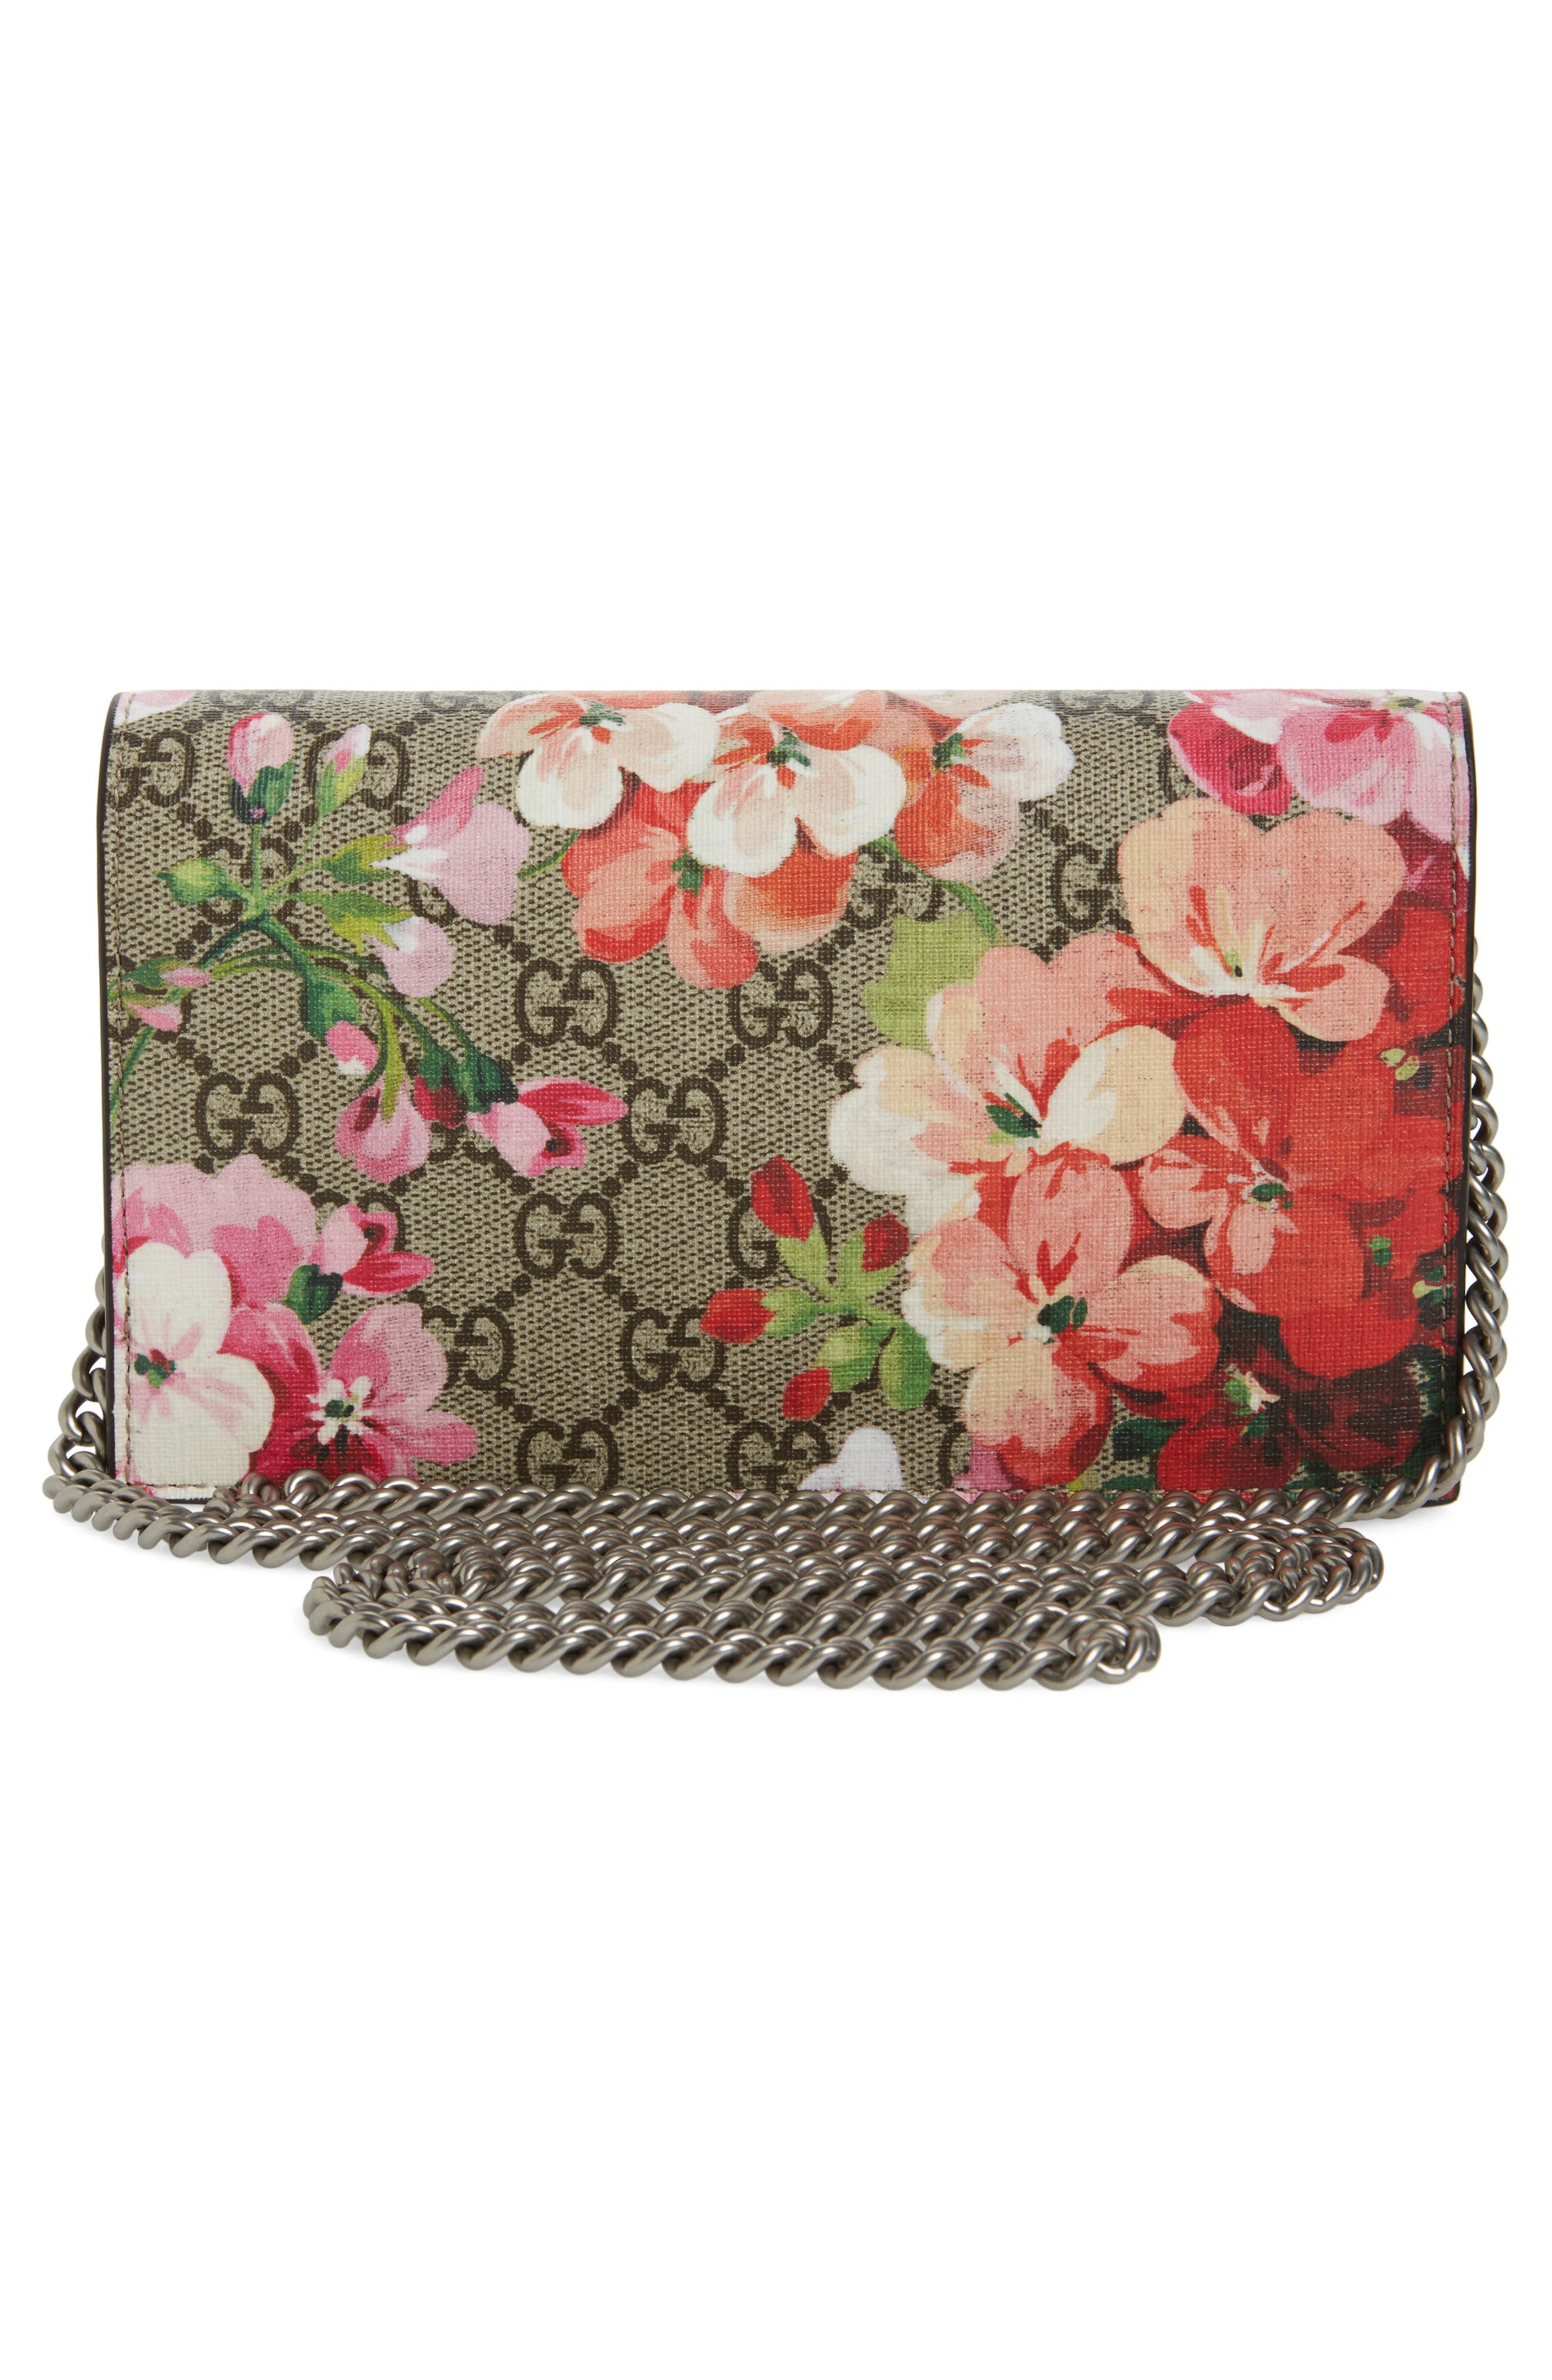 GG Blooms Supreme Canvas Wallet on a Chain,                             Alternate thumbnail 3, color,                             291